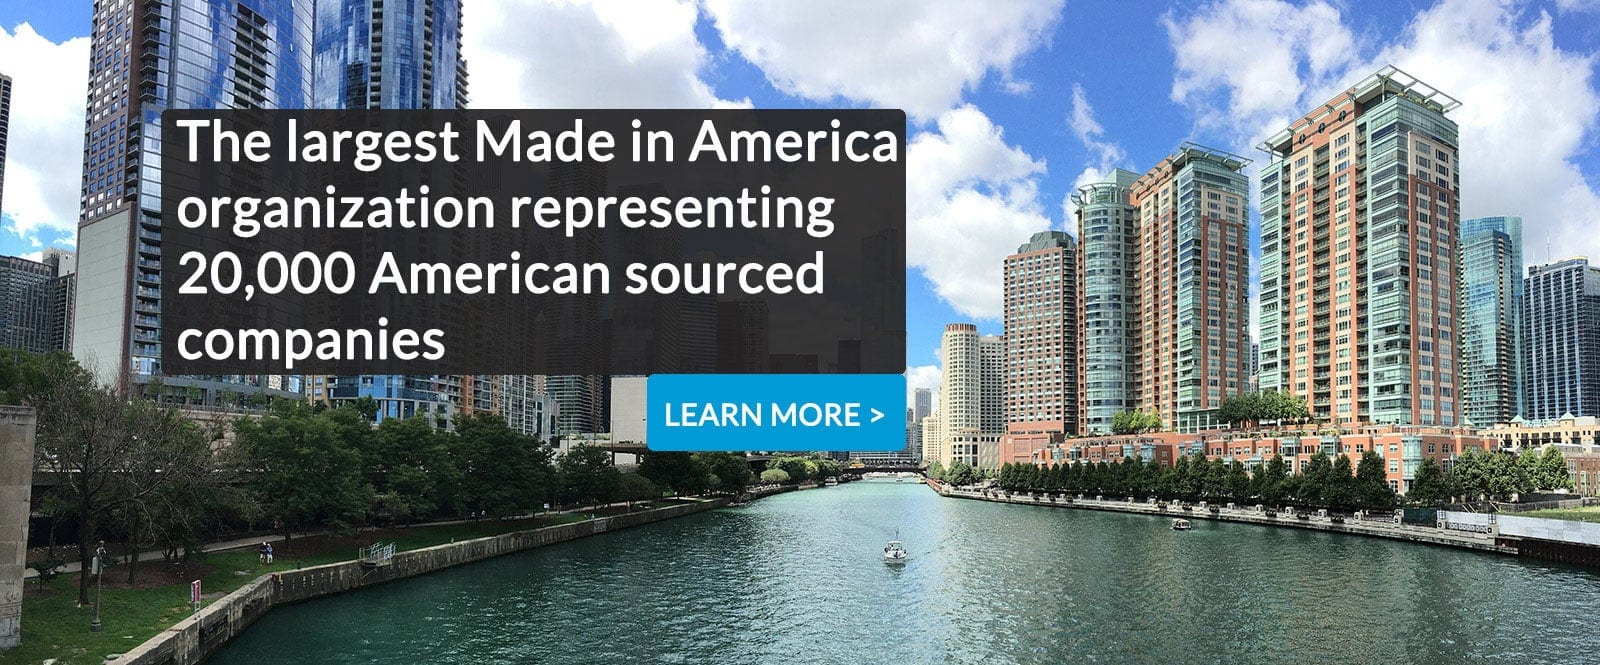 chciago waterway - Busineses in America